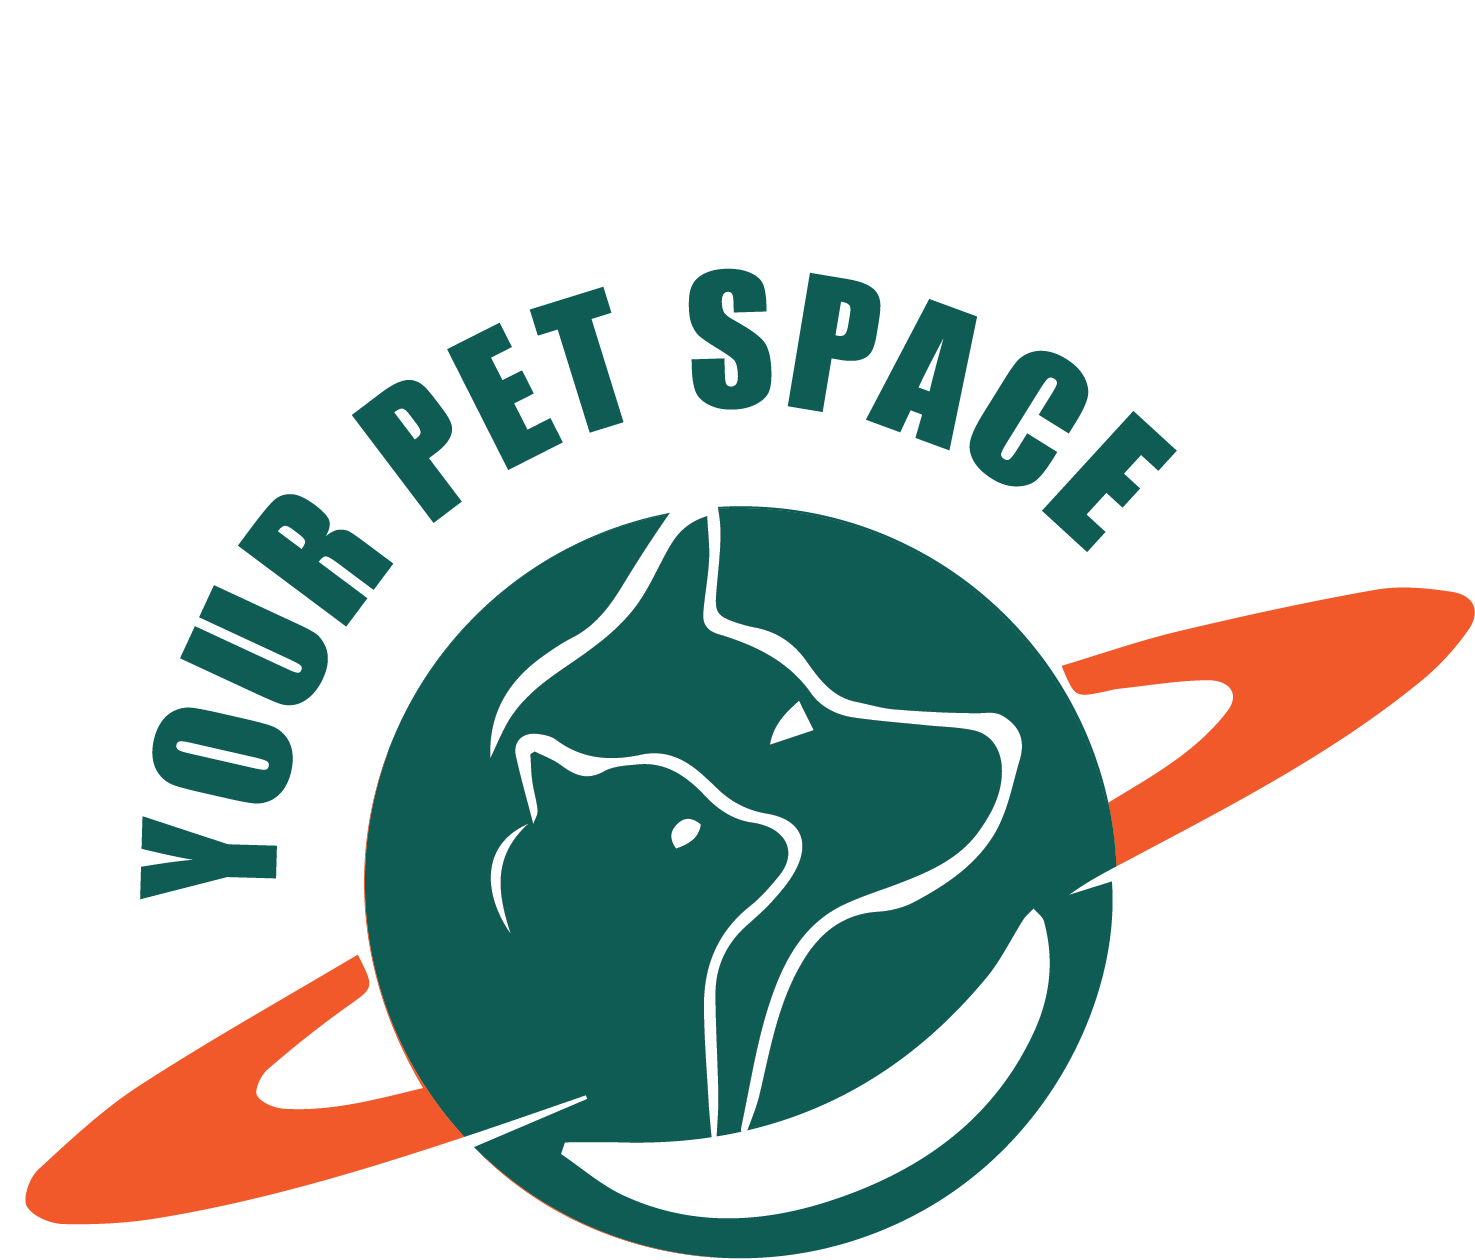 Your Pet Space